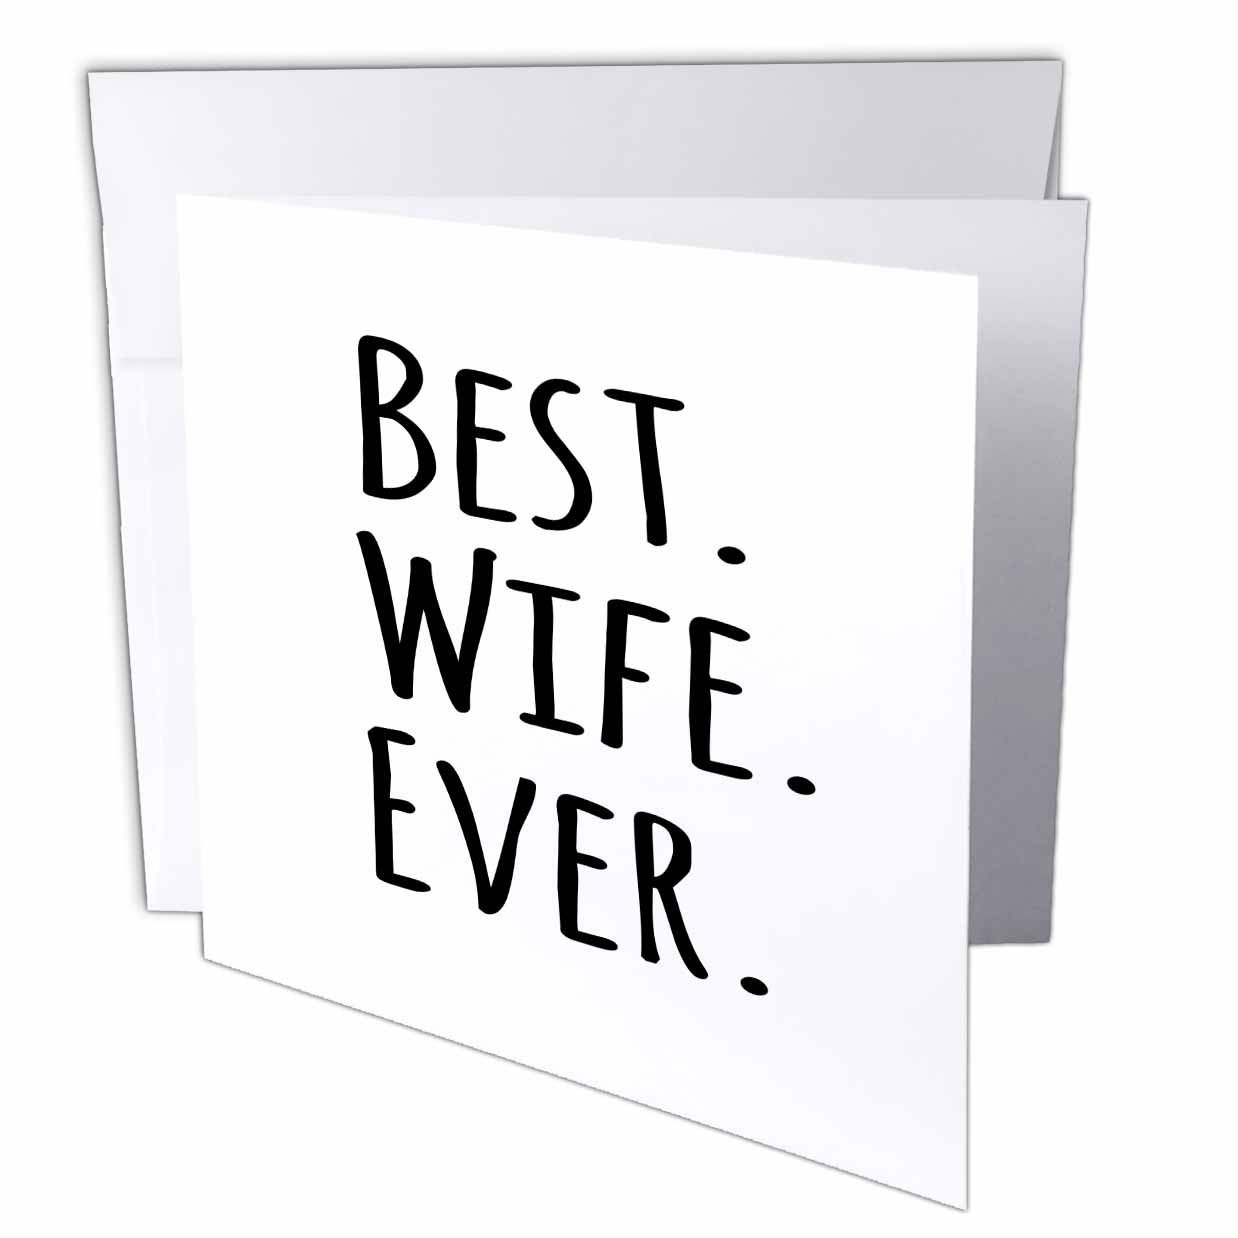 Cheap free anniversary cards for wife find free anniversary cards get quotations inspirationzstore typography best wife ever fun romantic married wedded love gifts for her for kristyandbryce Choice Image